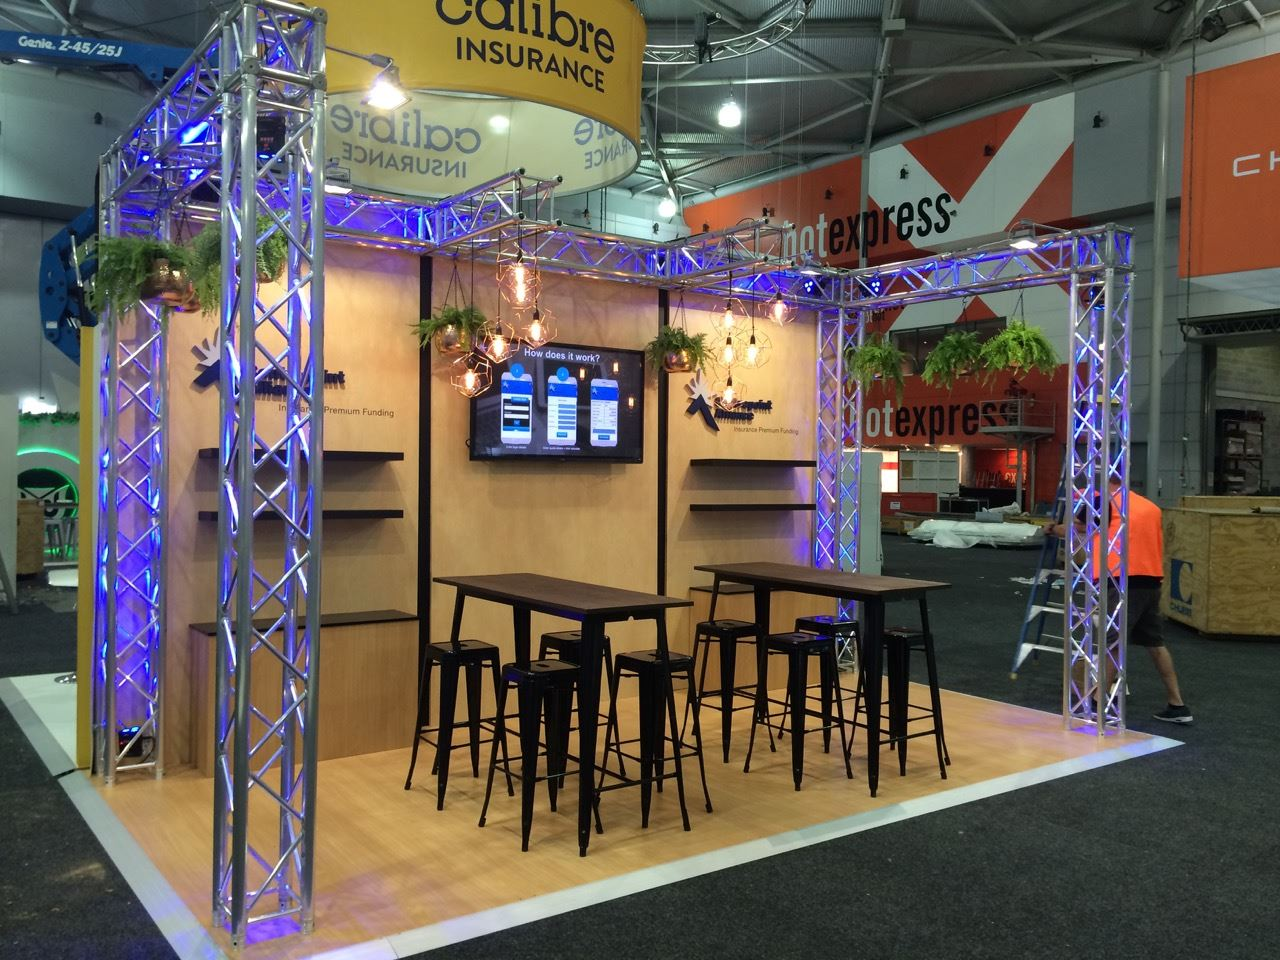 Exhibition Stand Dimensions : Staging dimensions brisbane prop hire brisbane event theme